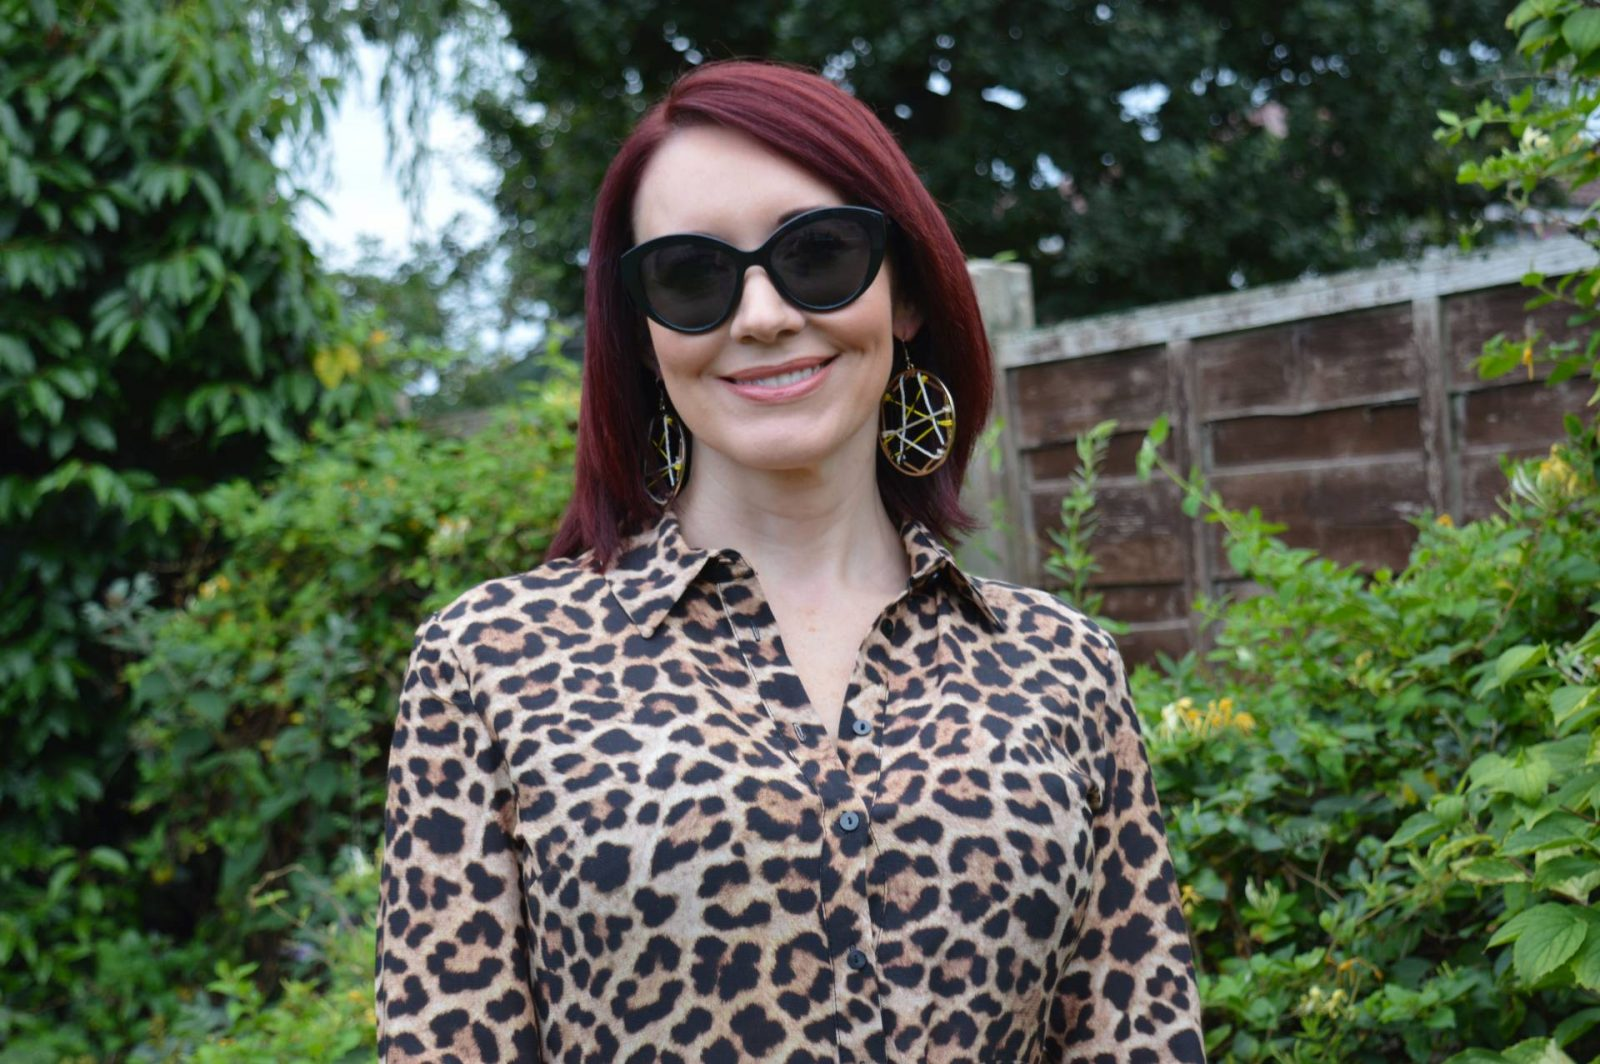 Zara leopard print shirt dress